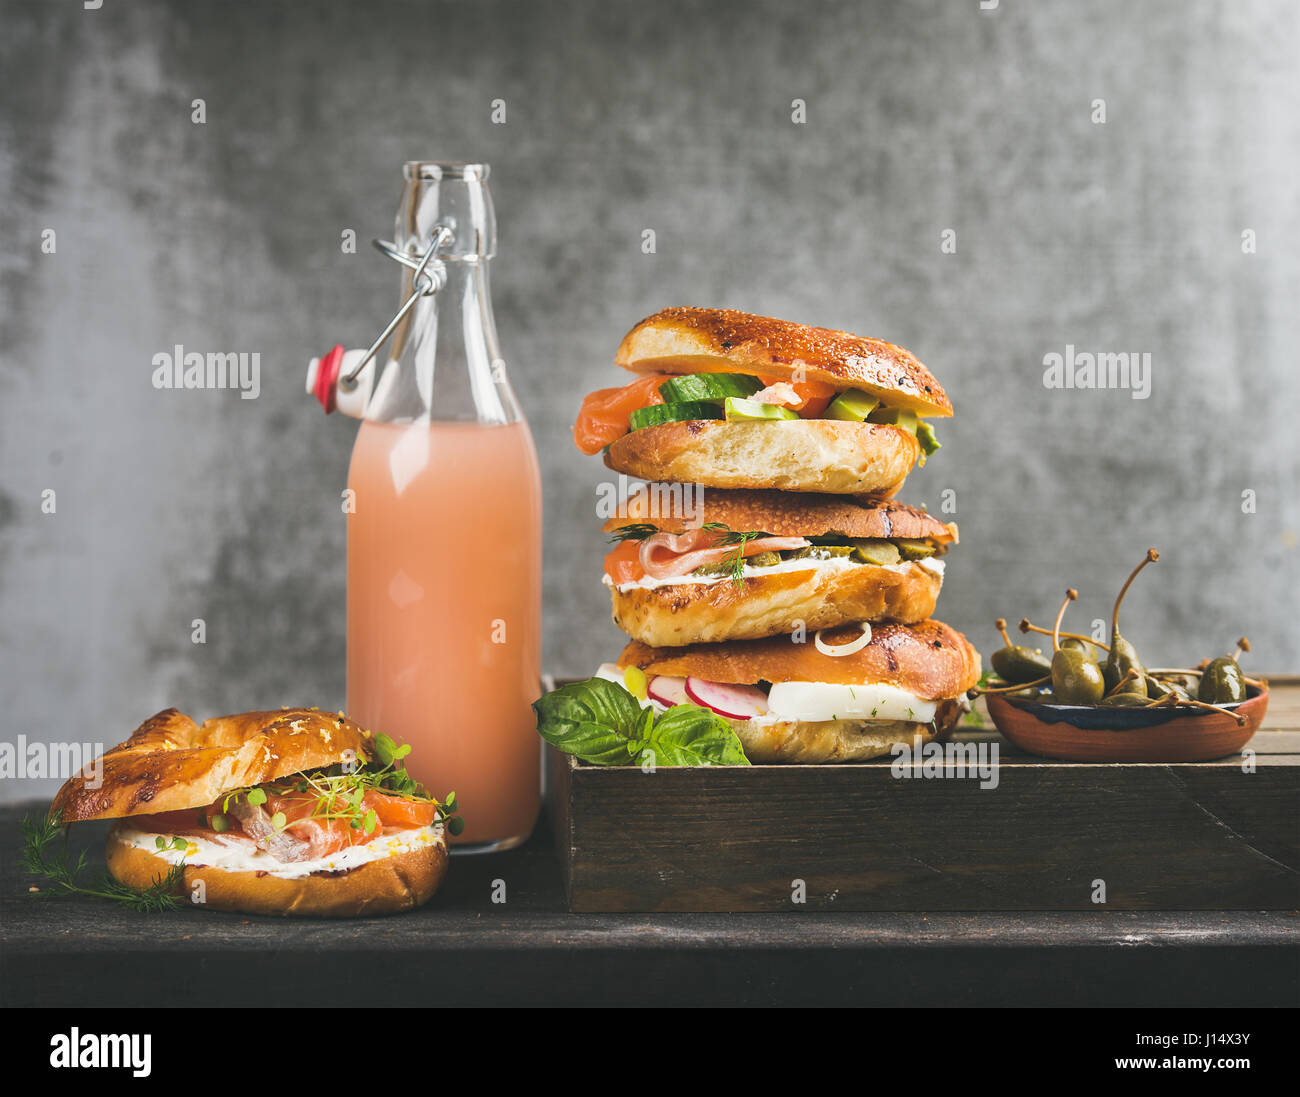 Bagels with salmon, eggs, vegetables, capers, cream-cheese and grapefruit lemonade - Stock Image